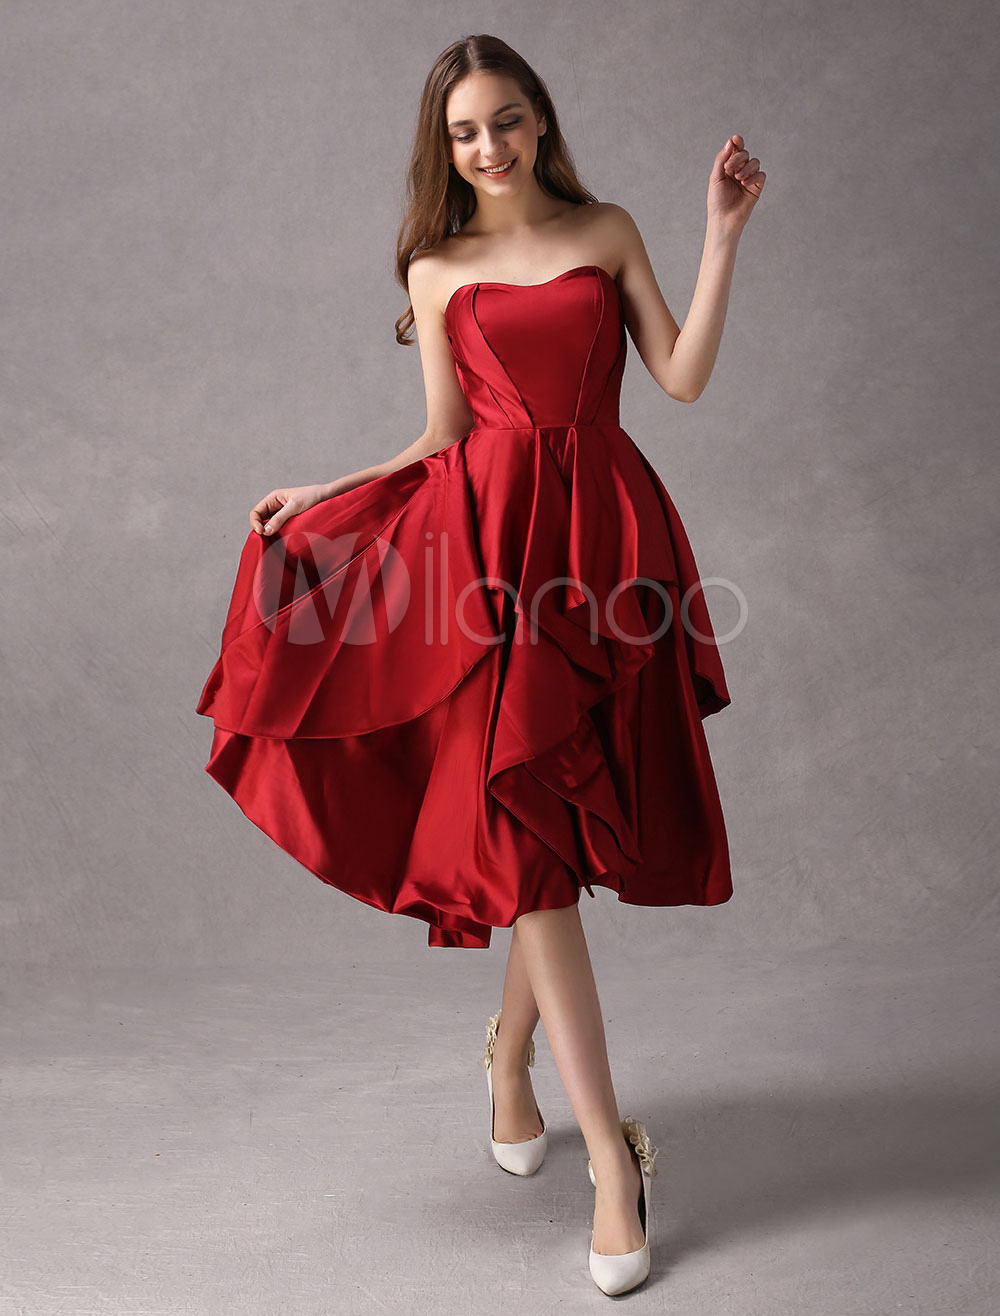 Strapless Tea-Length Cocktail Dress